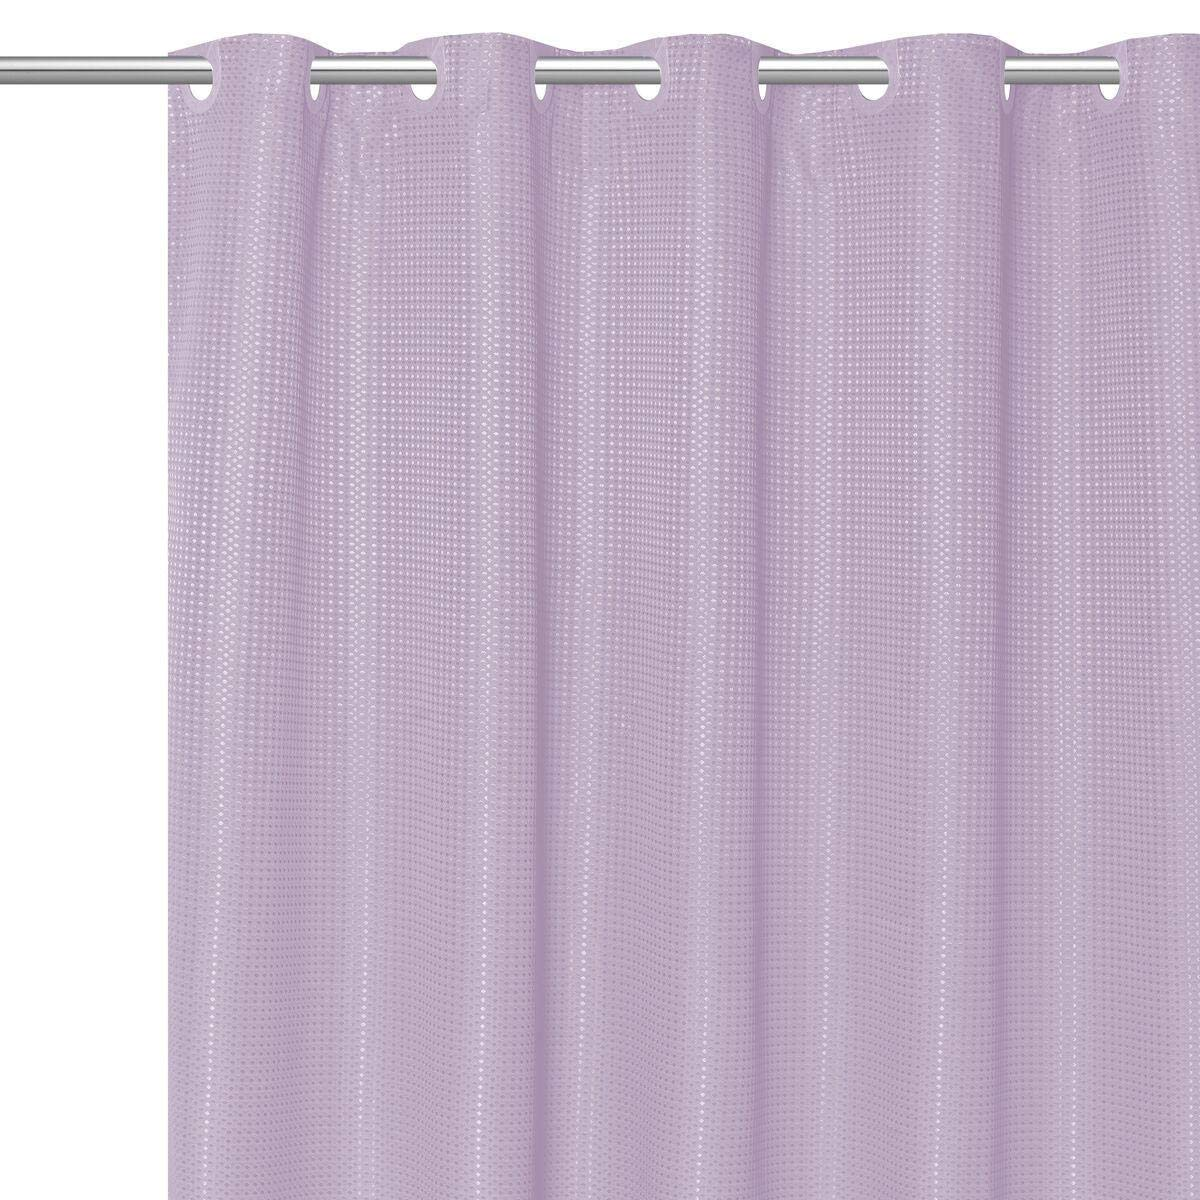 DN_LIN Stylish EZ ON Waffle Weave Fabric Shower Curtain with Snap Off Liner 70''x75''- Lilac.